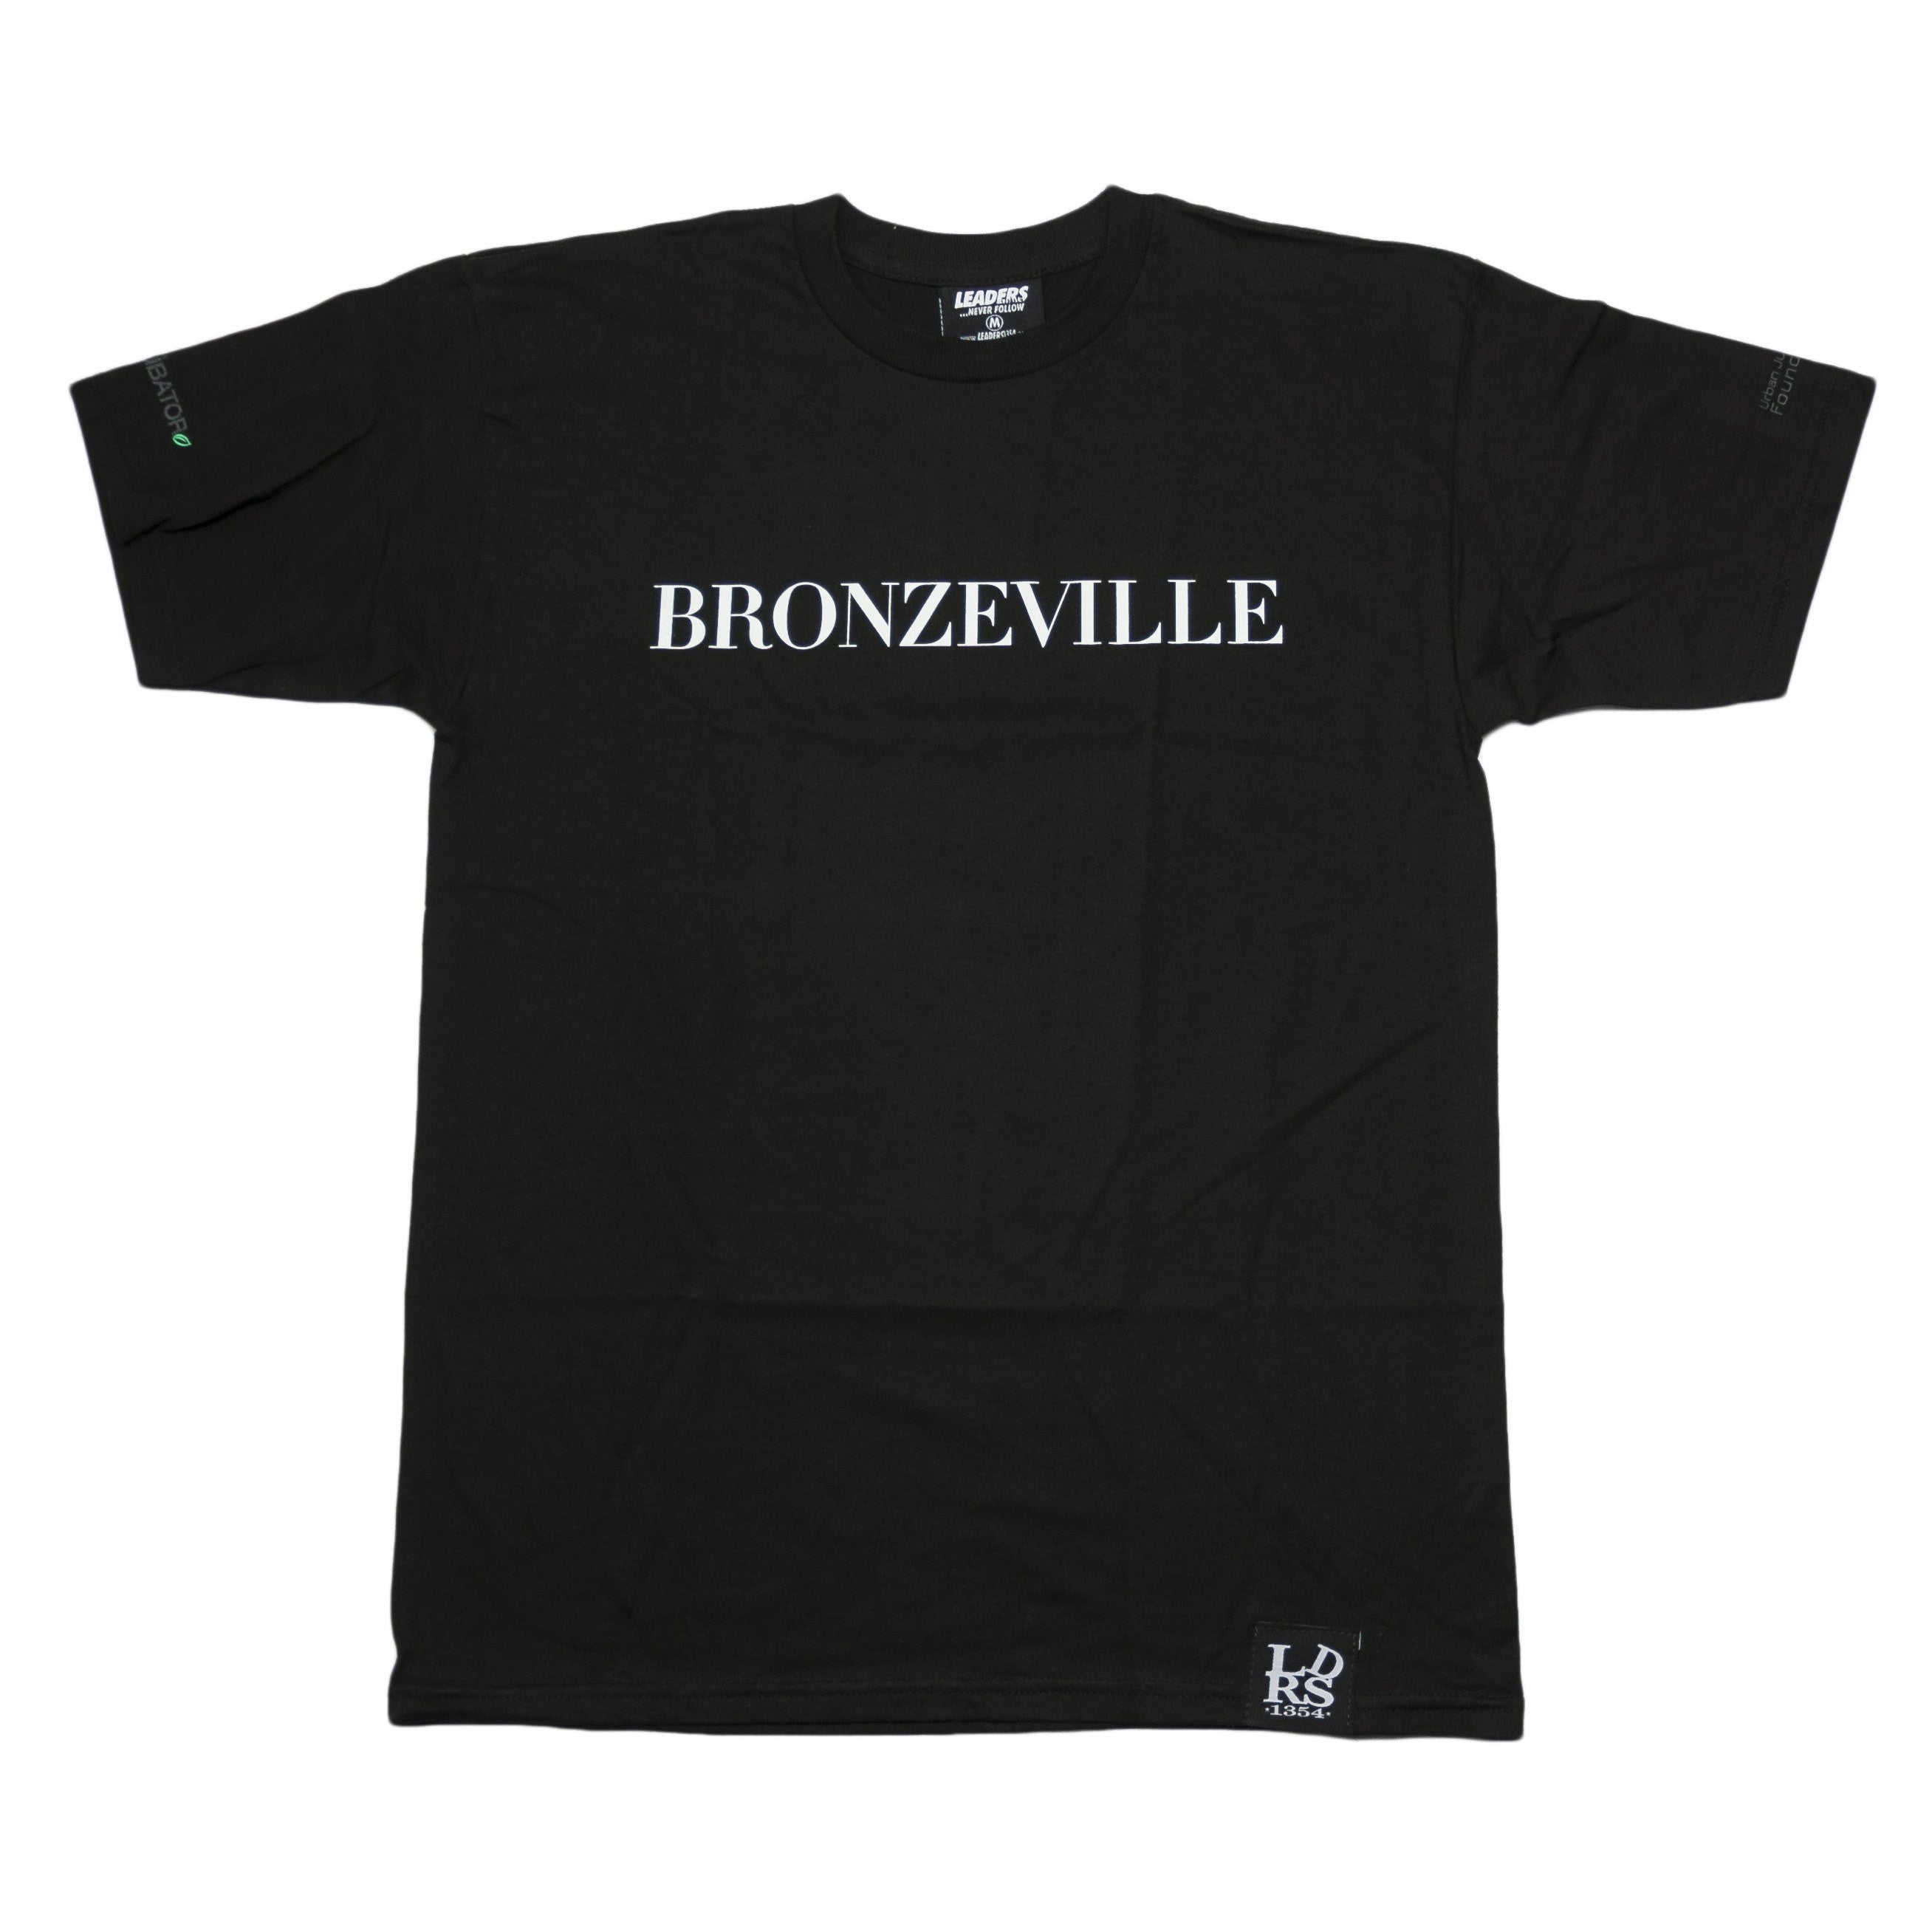 Bronzeville Tee - leaders1354